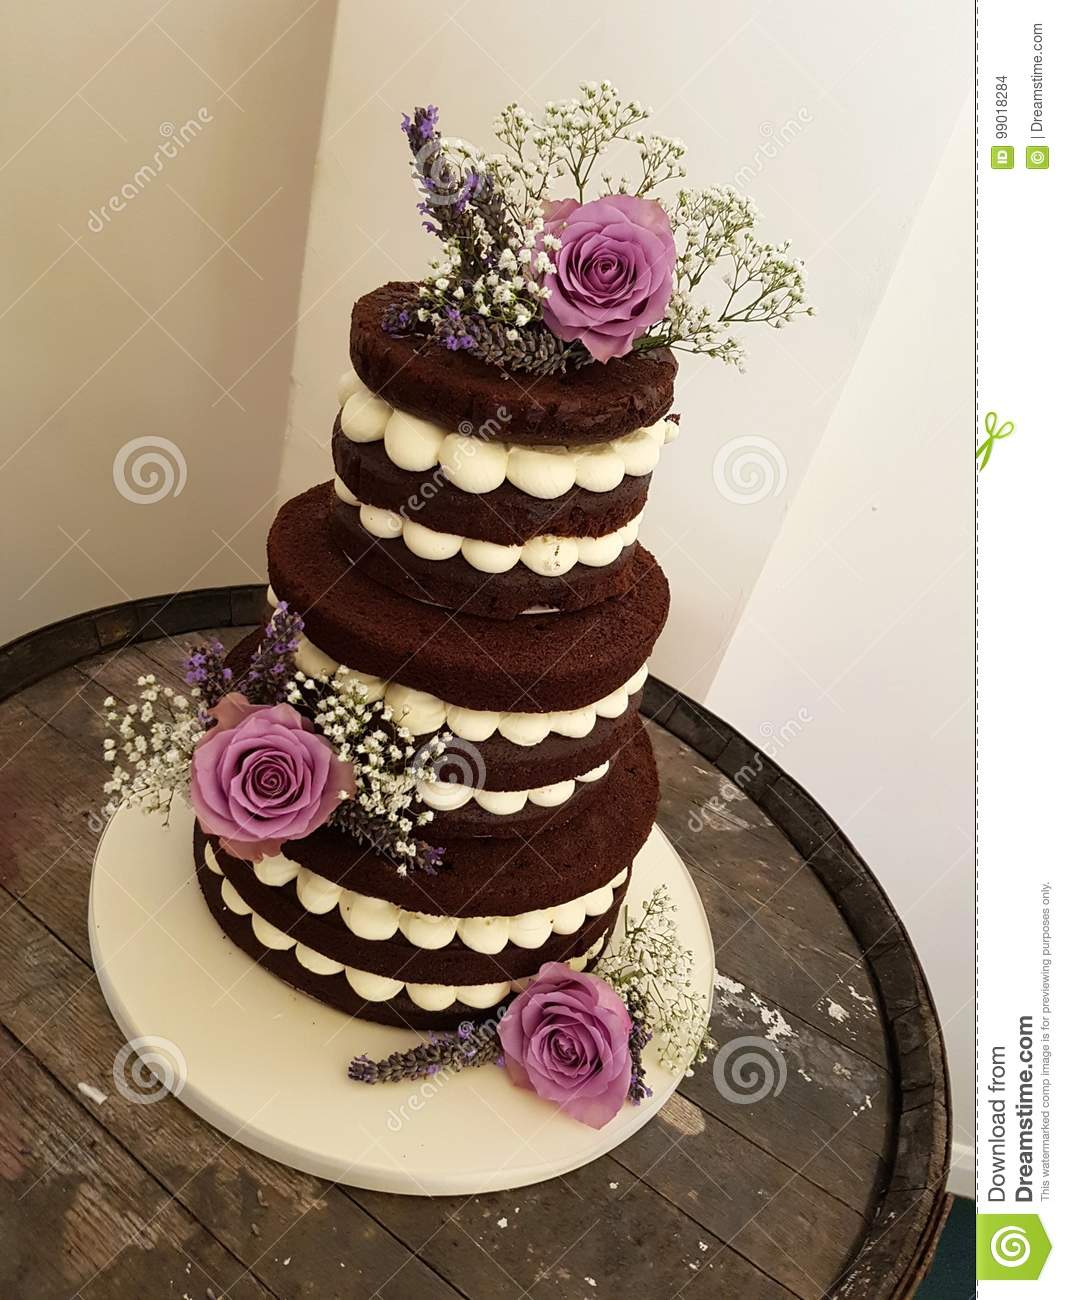 3 Tier Chocolate Naked Cake With Fresh Flowers Stock Photo Image